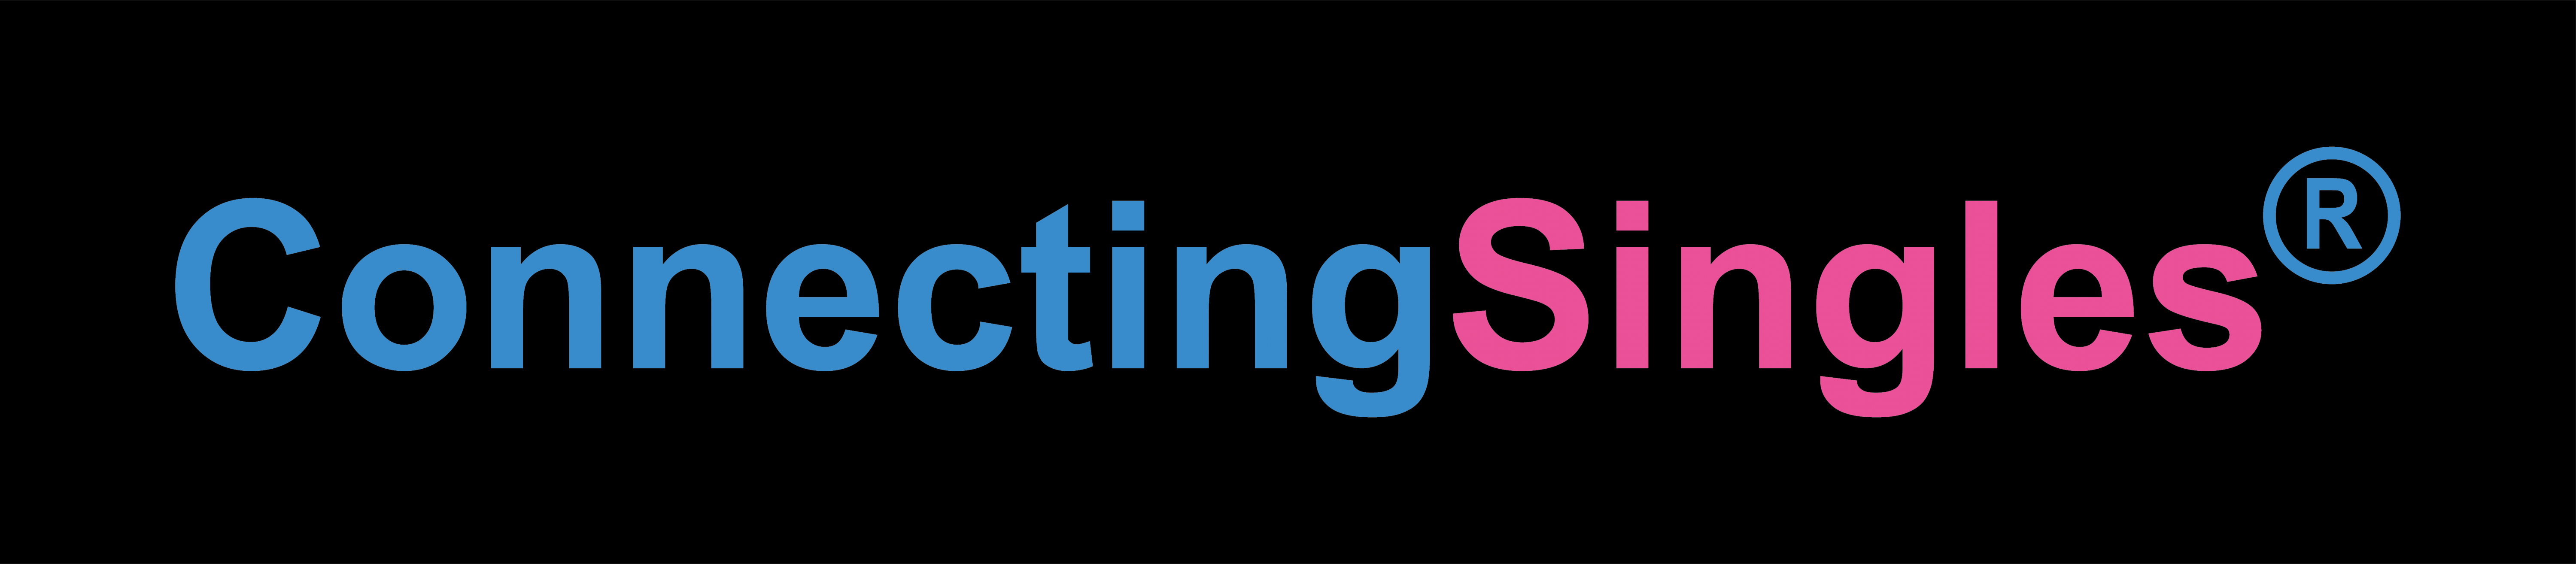 Connecting Singles Logo